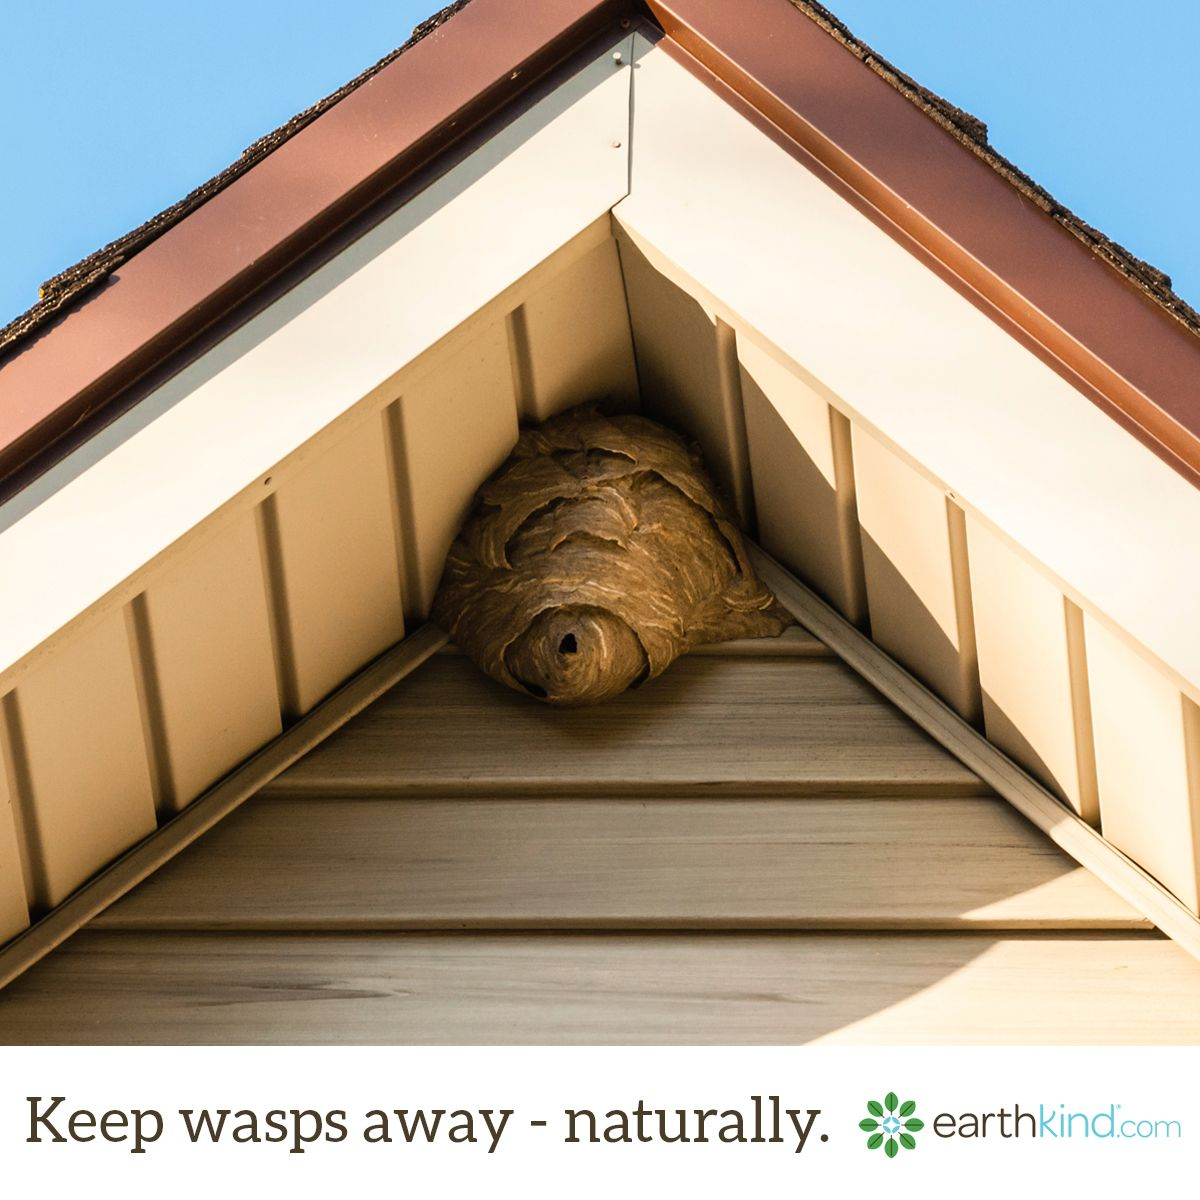 Try this tip to keep wasps away from your home and yard